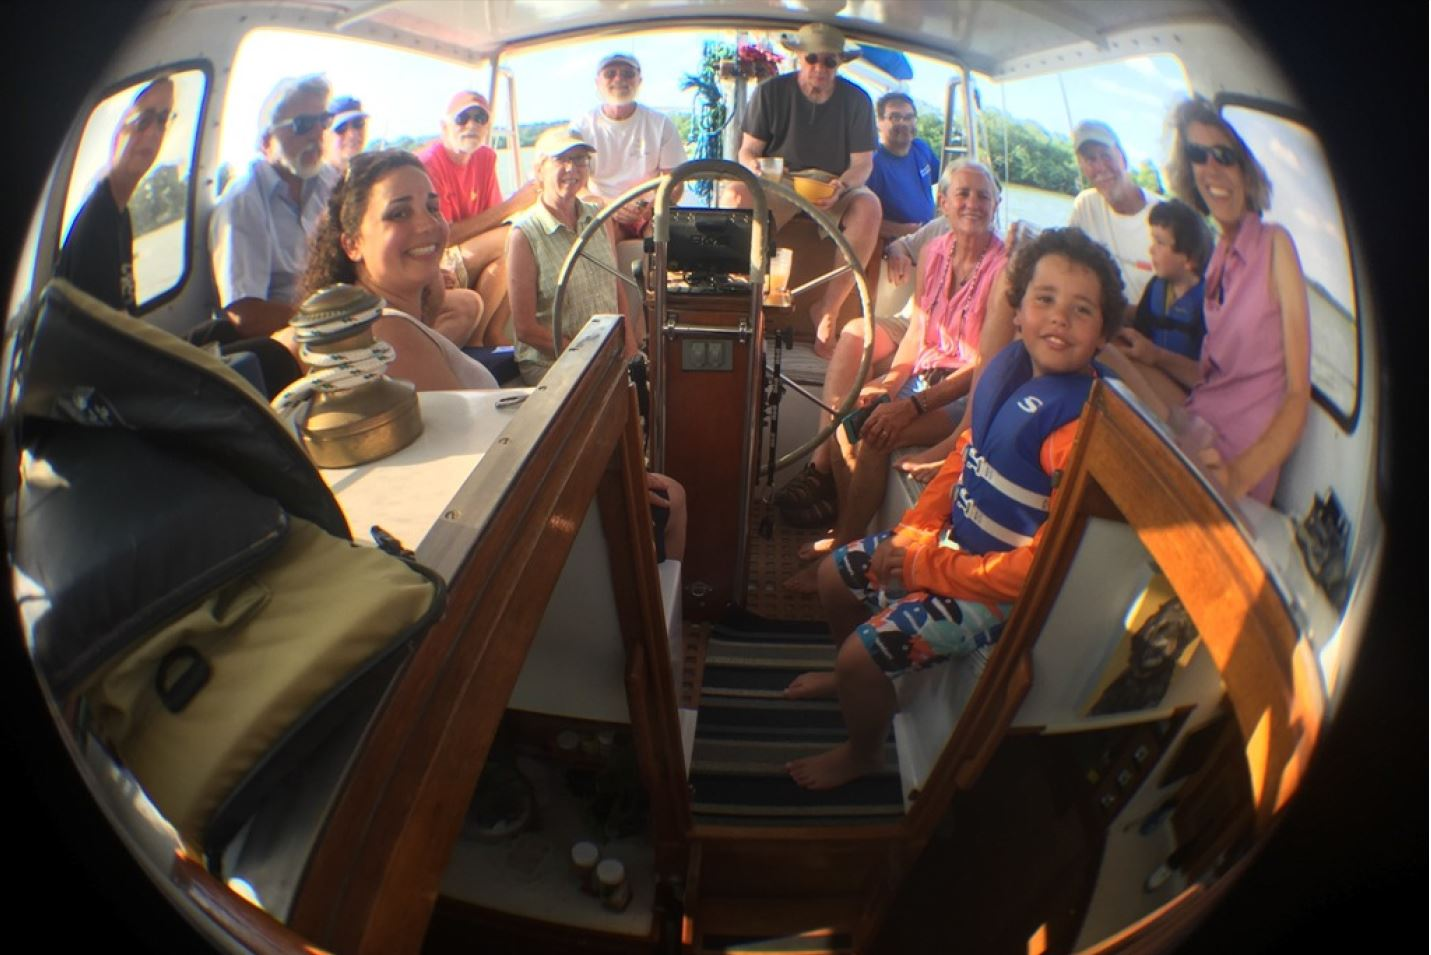 Dickerson sailors aboard Down Home through a fish-eye lens